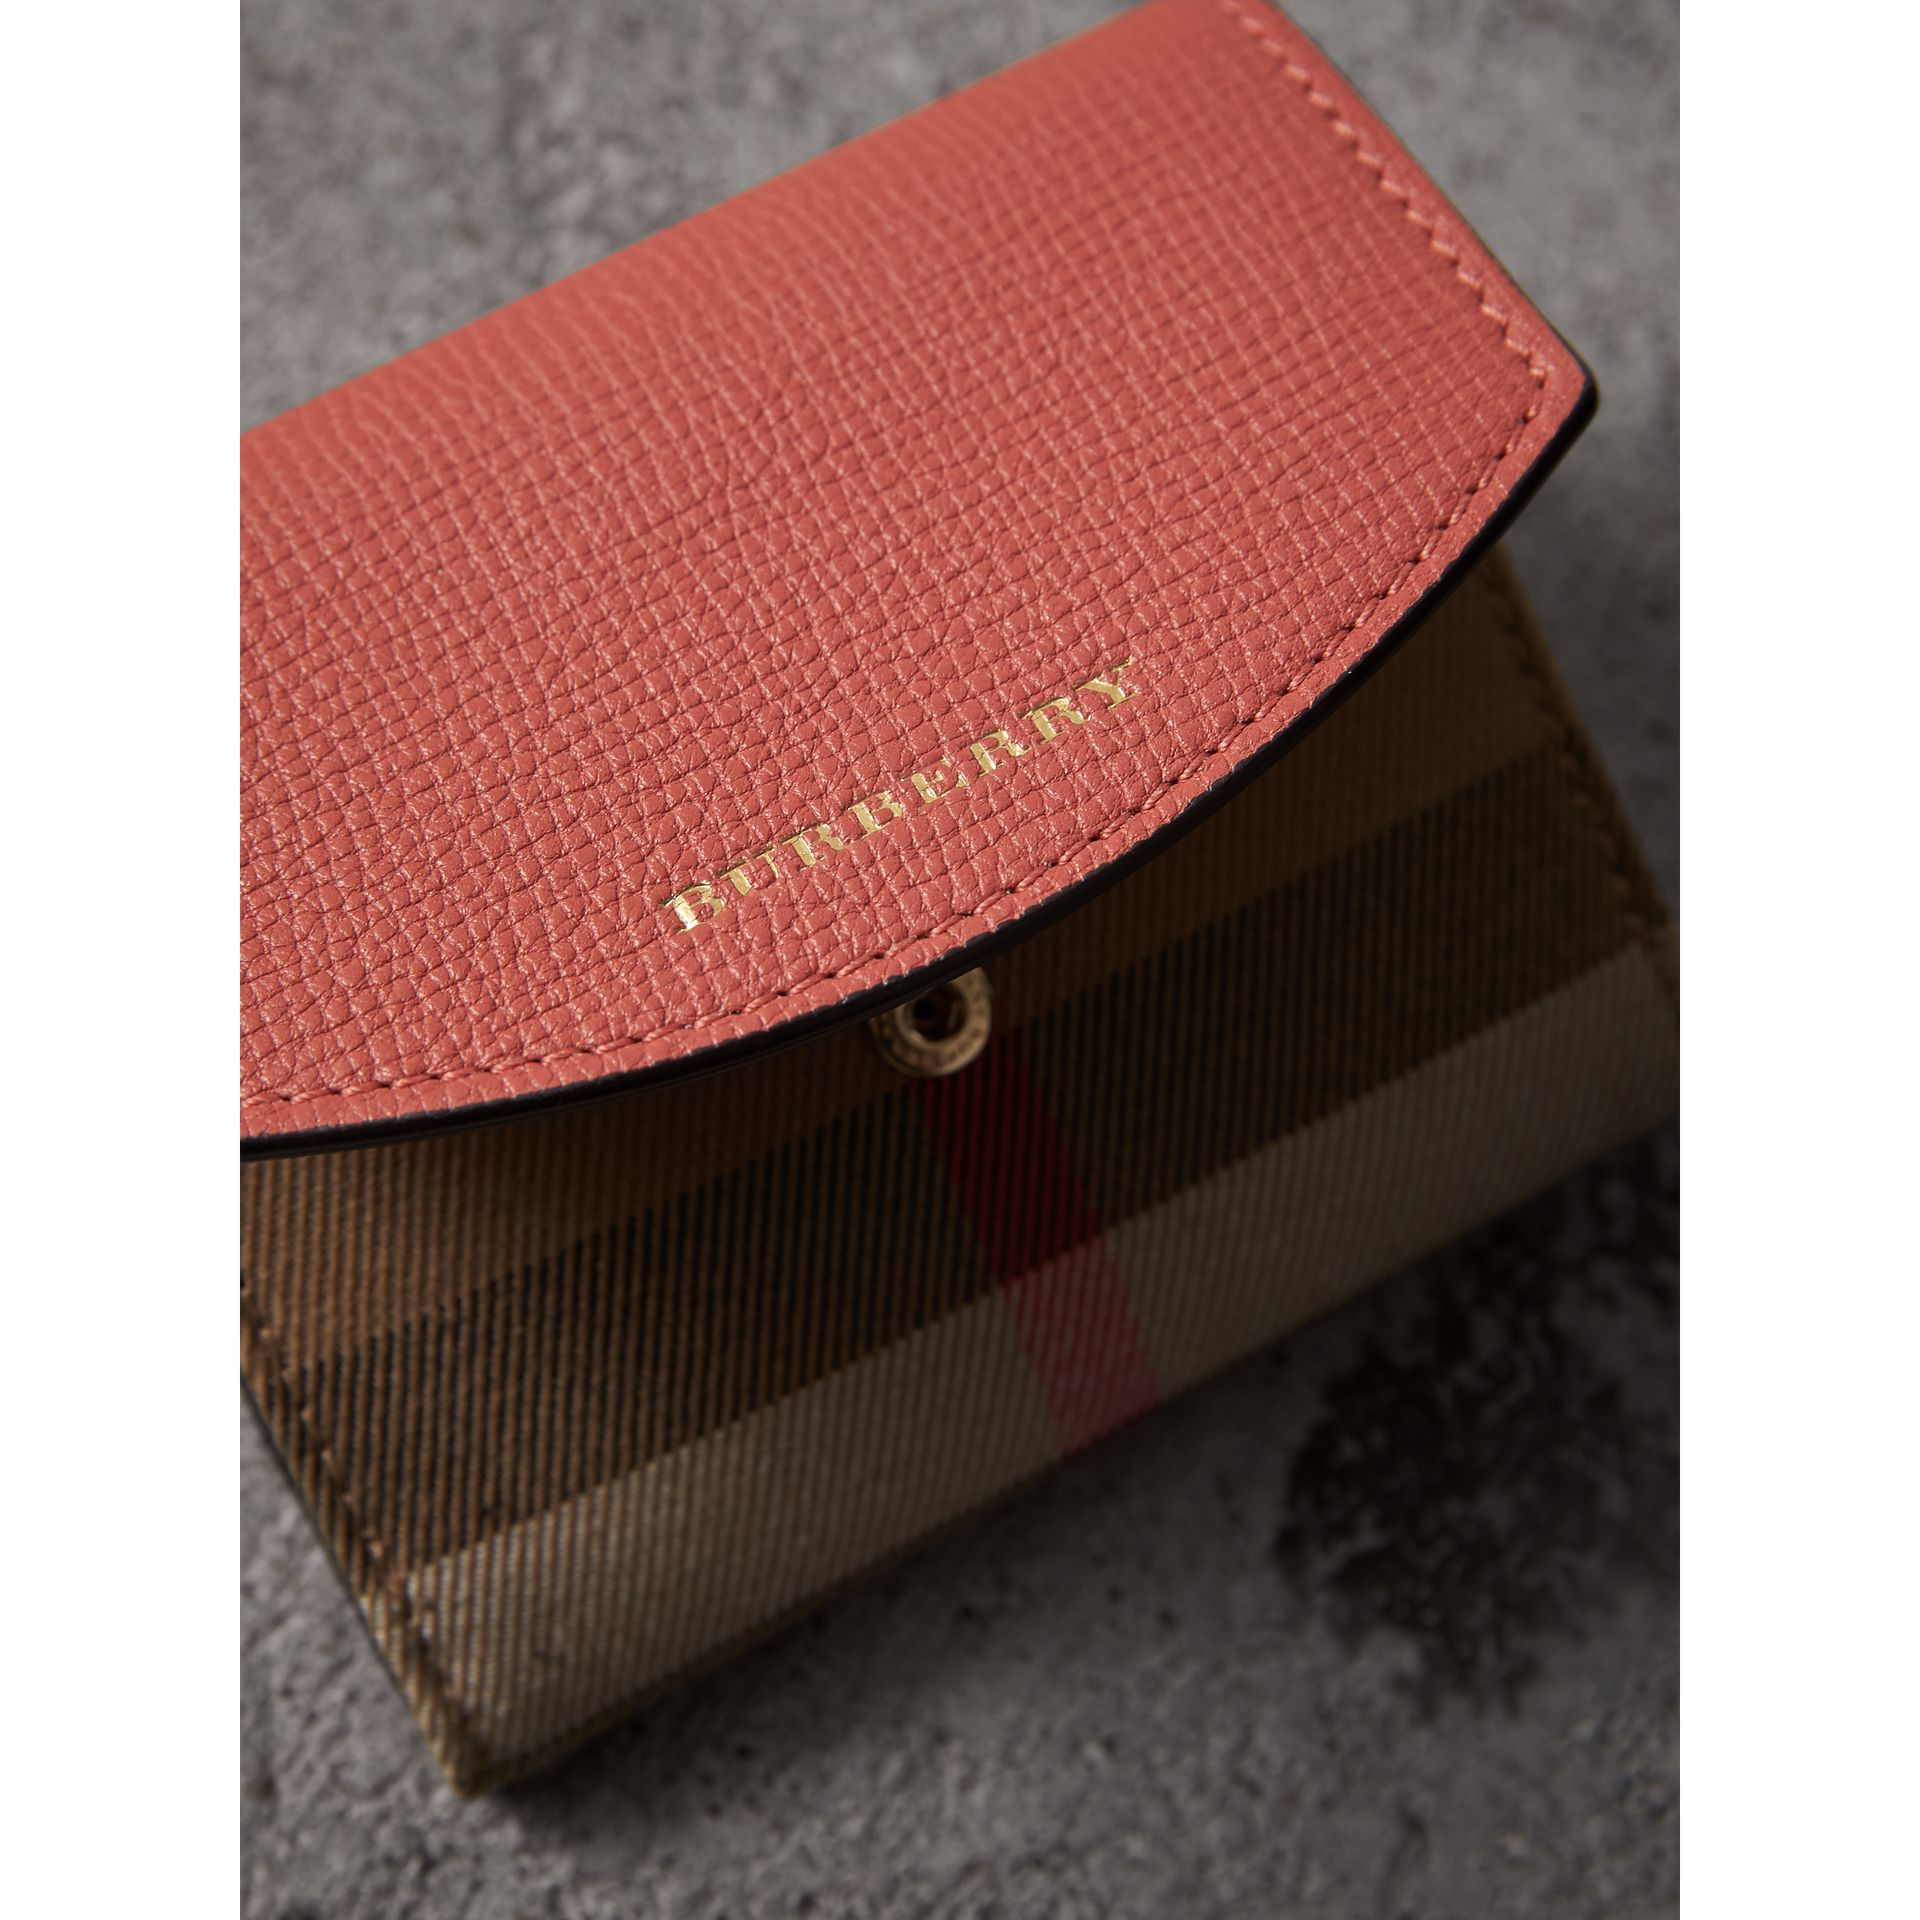 House Check and Leather Wallet in Cinnamon Red - Women | Burberry United States - gallery image 1